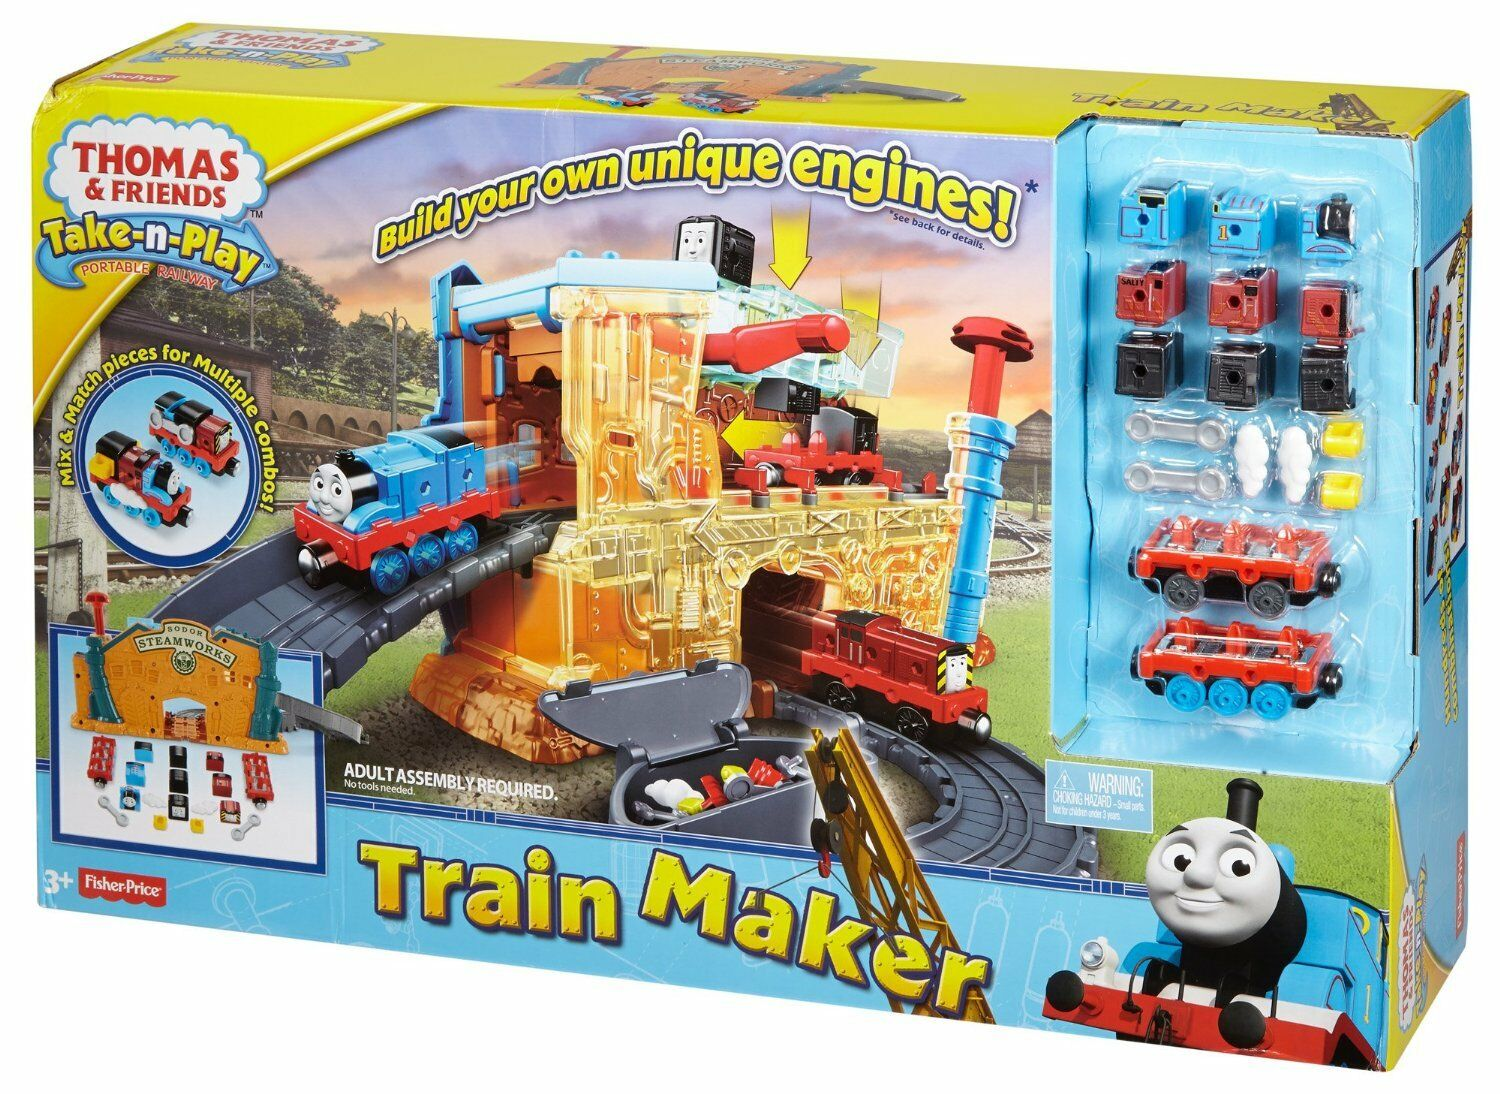 THOMAS und seine Freunde LOKOMOTIVEN FABRIK Spiel Set Take-n-Play FISHER PRICE